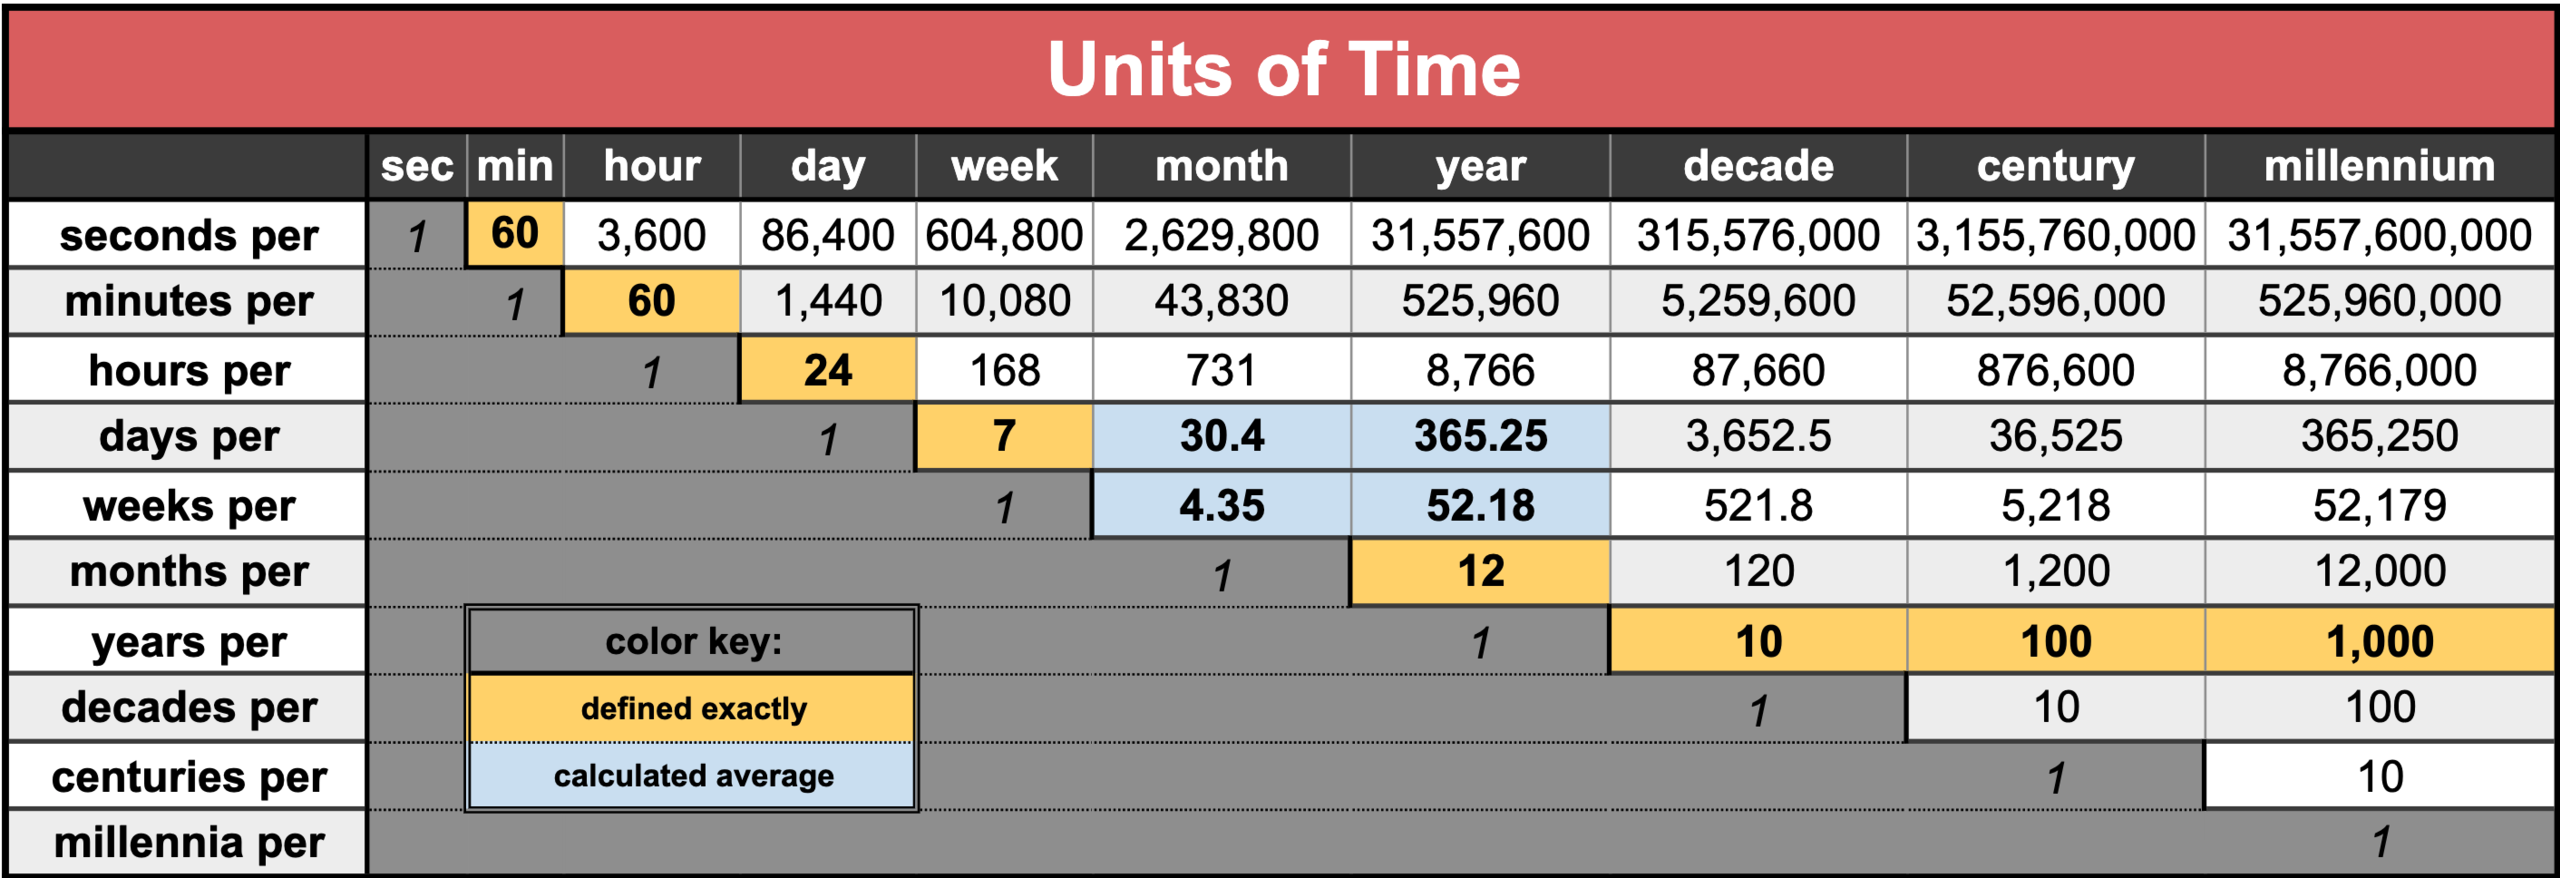 2560px-Units_of_Time_in_tabular_form.png